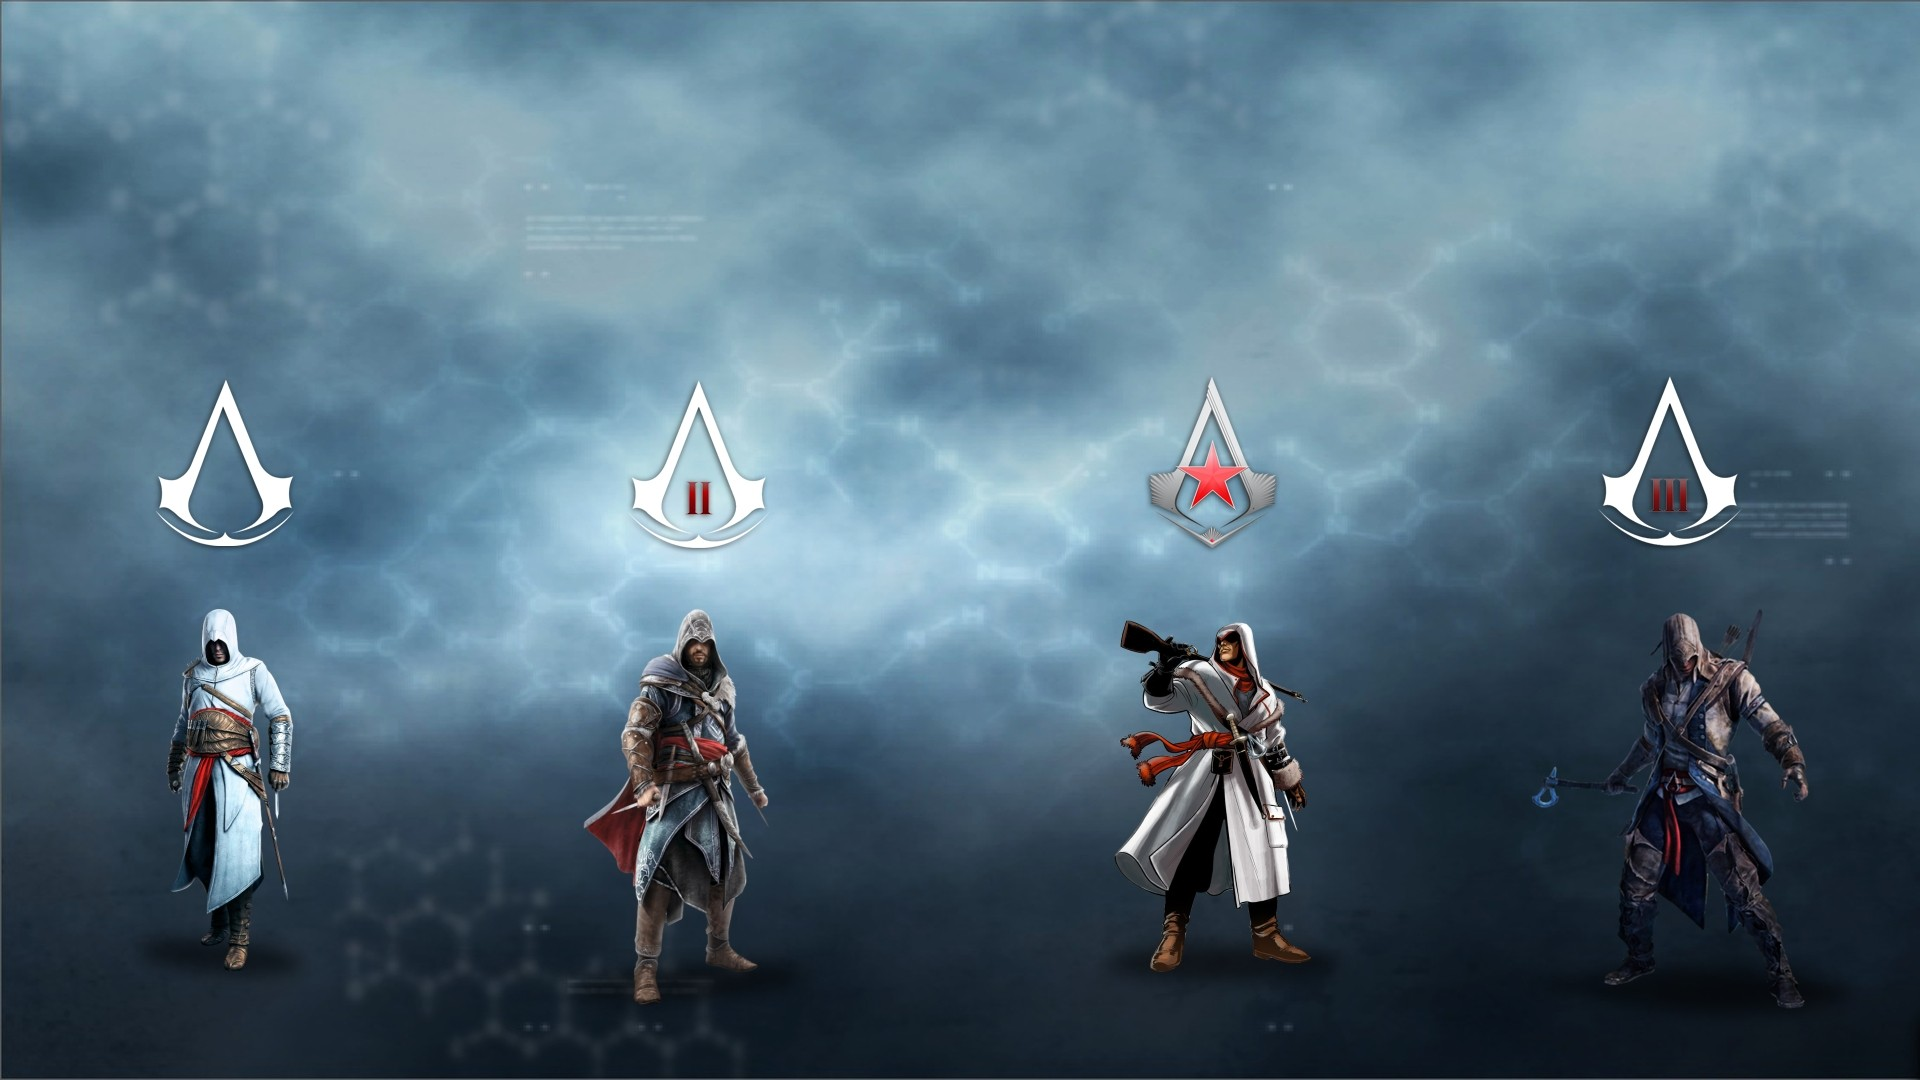 Assassins Creed Computer Wallpapers Desktop Backgrounds 1920x1080 1920x1080